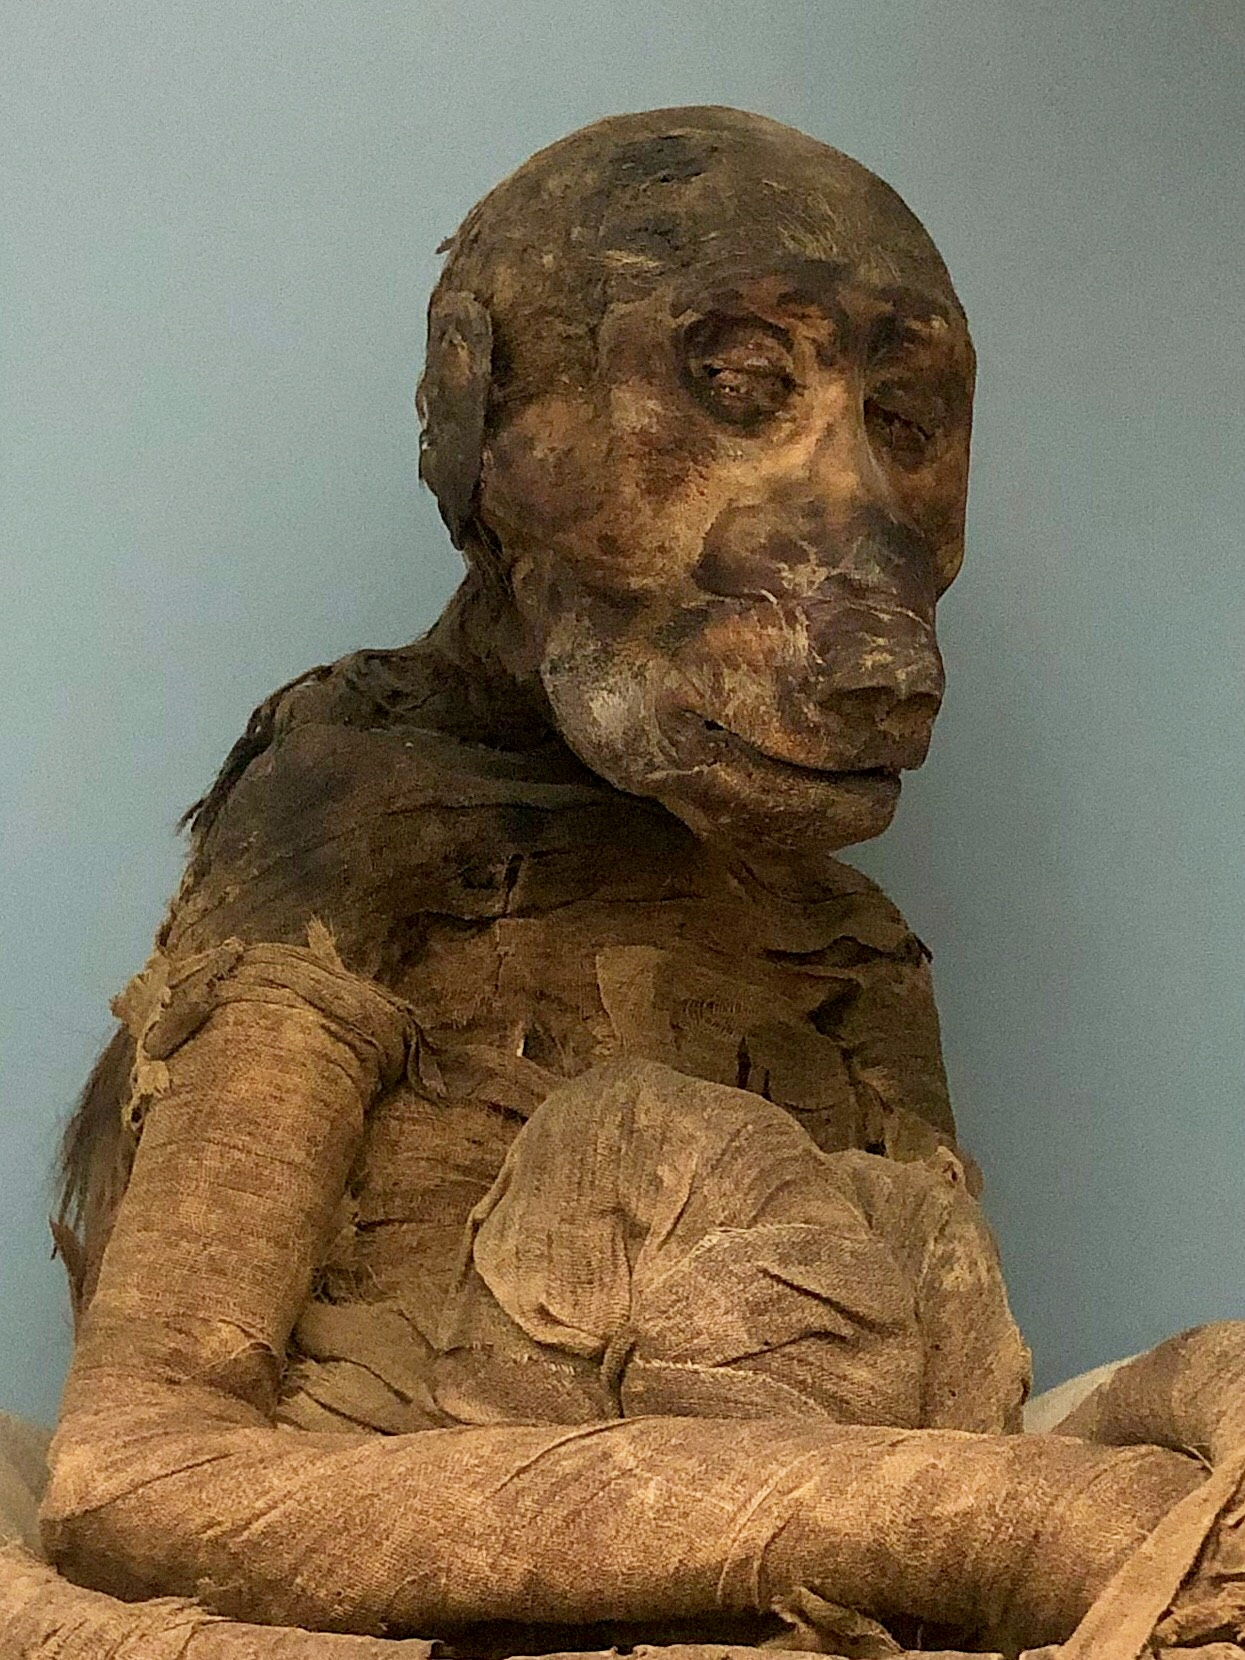 One wing of the Egyptian Museum in Cairo contains animal mummies like this baboon